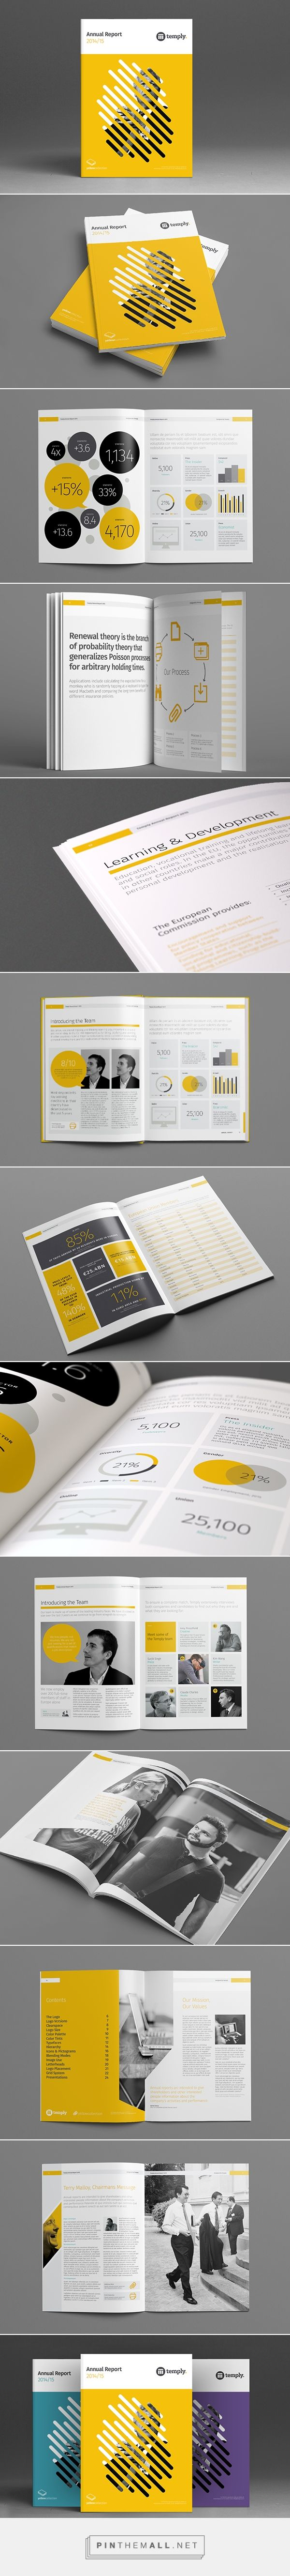 best ideas about report design annual report i will design book ebook interior or layout